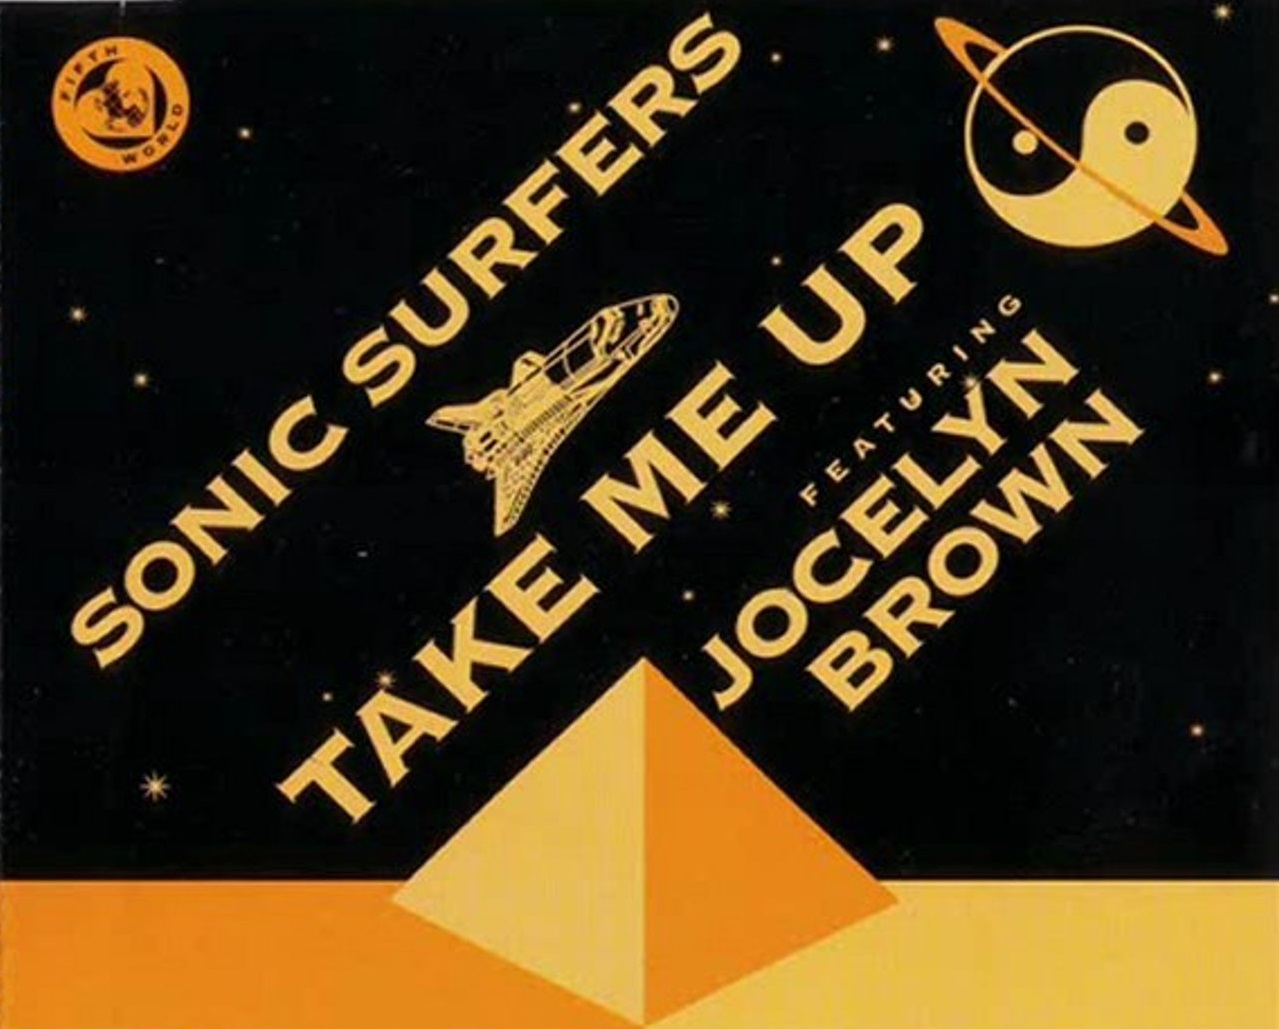 Sonic Surfers feat. Jocelyn Brown - Take me up